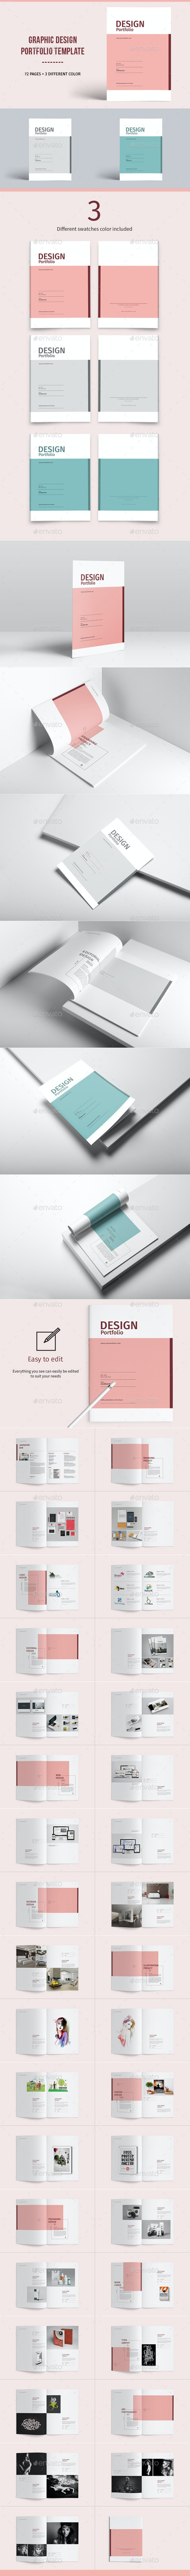 Graphic Design Portfolio Template - Portfolio Brochures